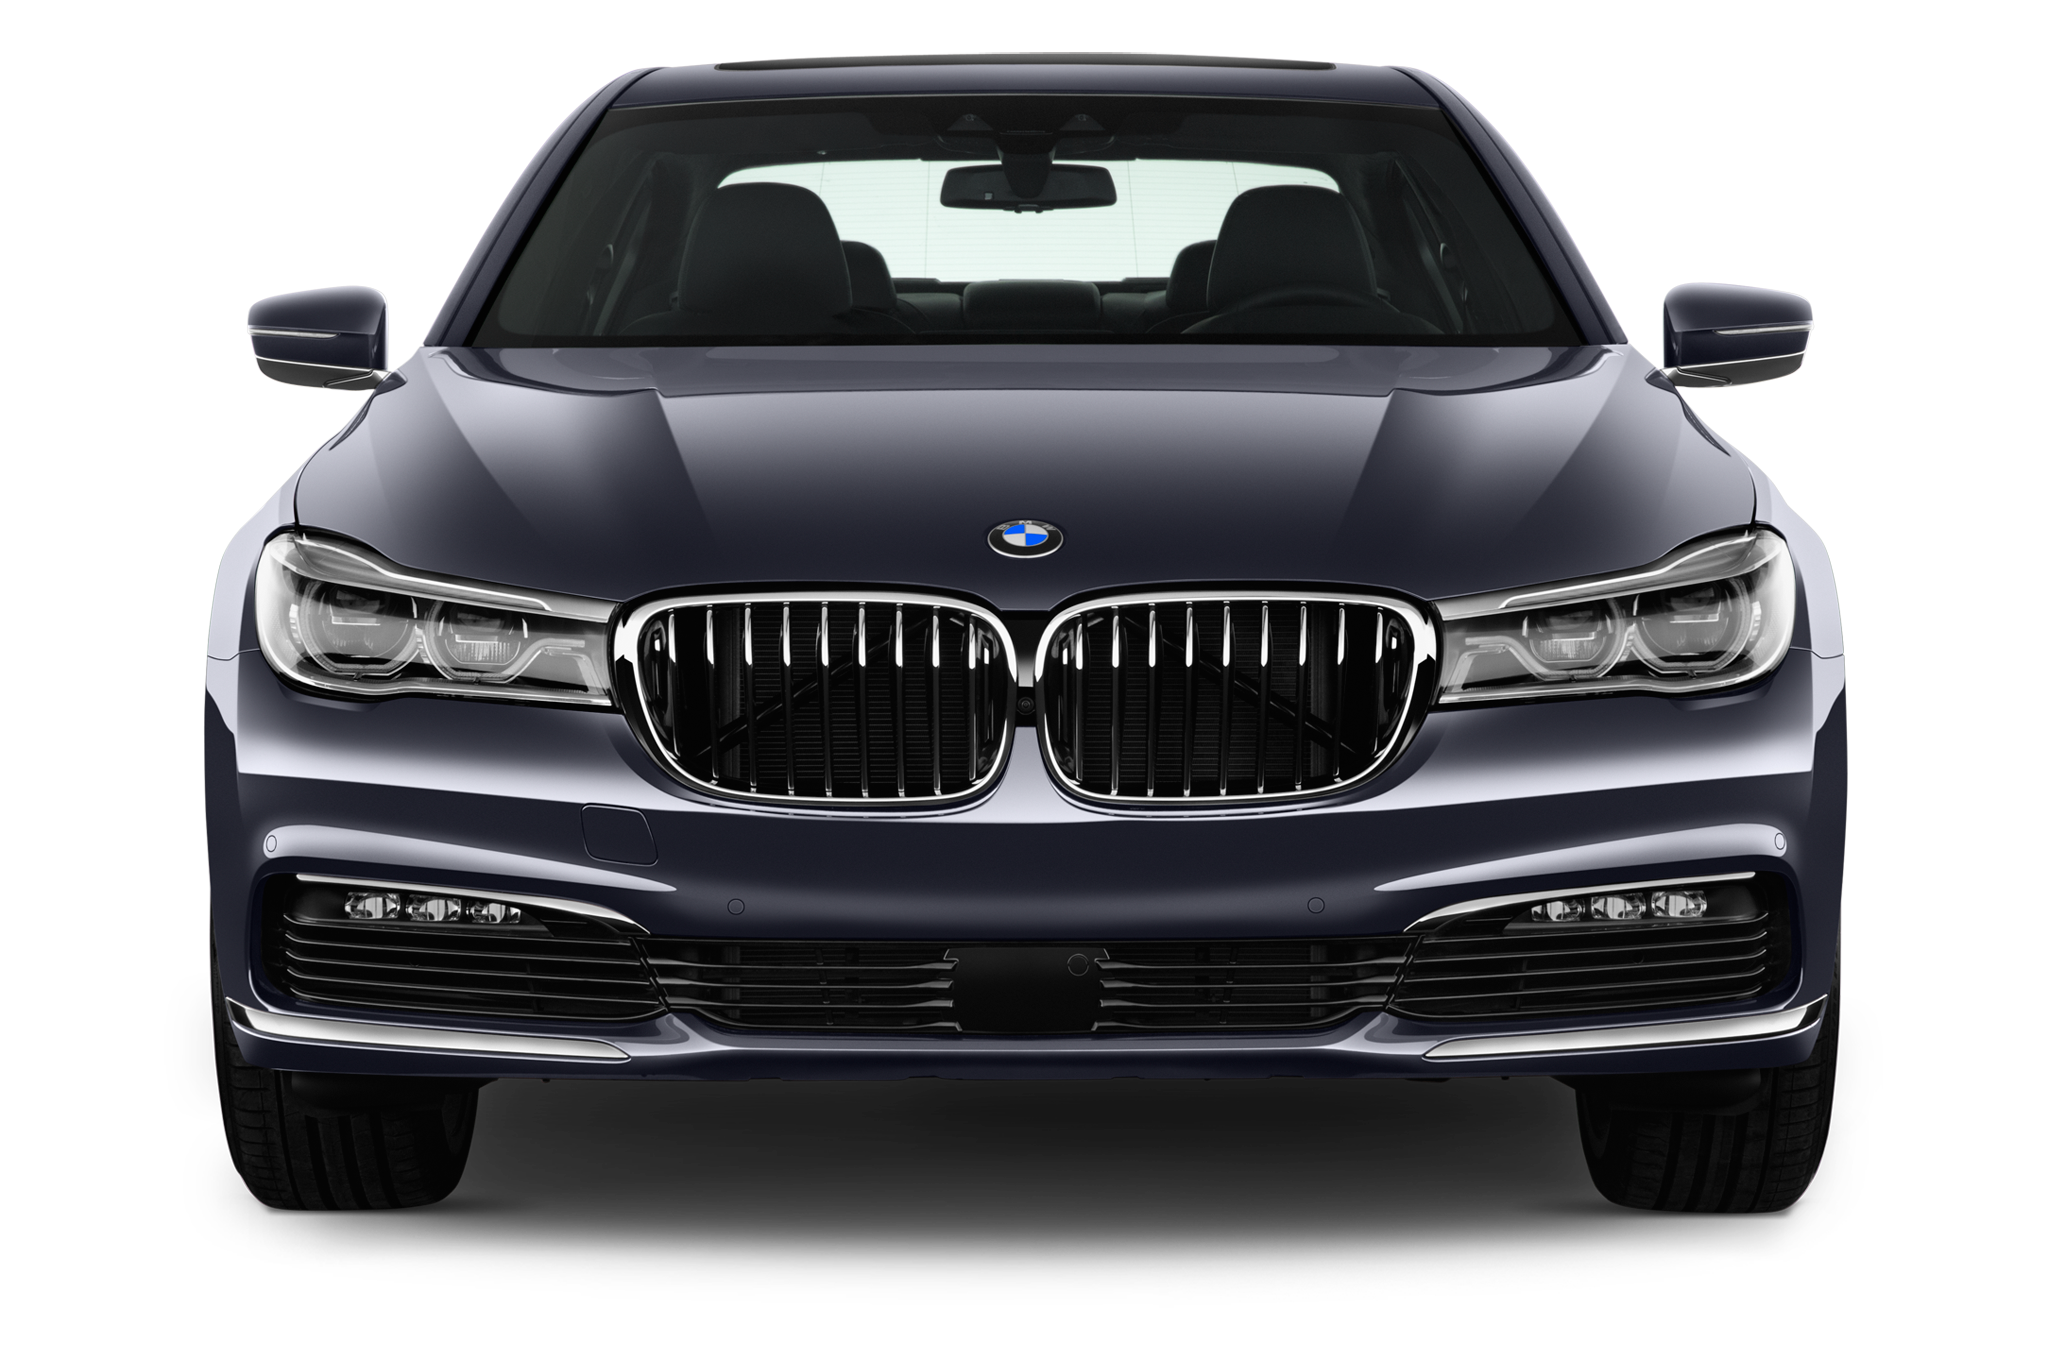 Bmw 7 Series Turns 40 Issues Limited Edition Model Automobile